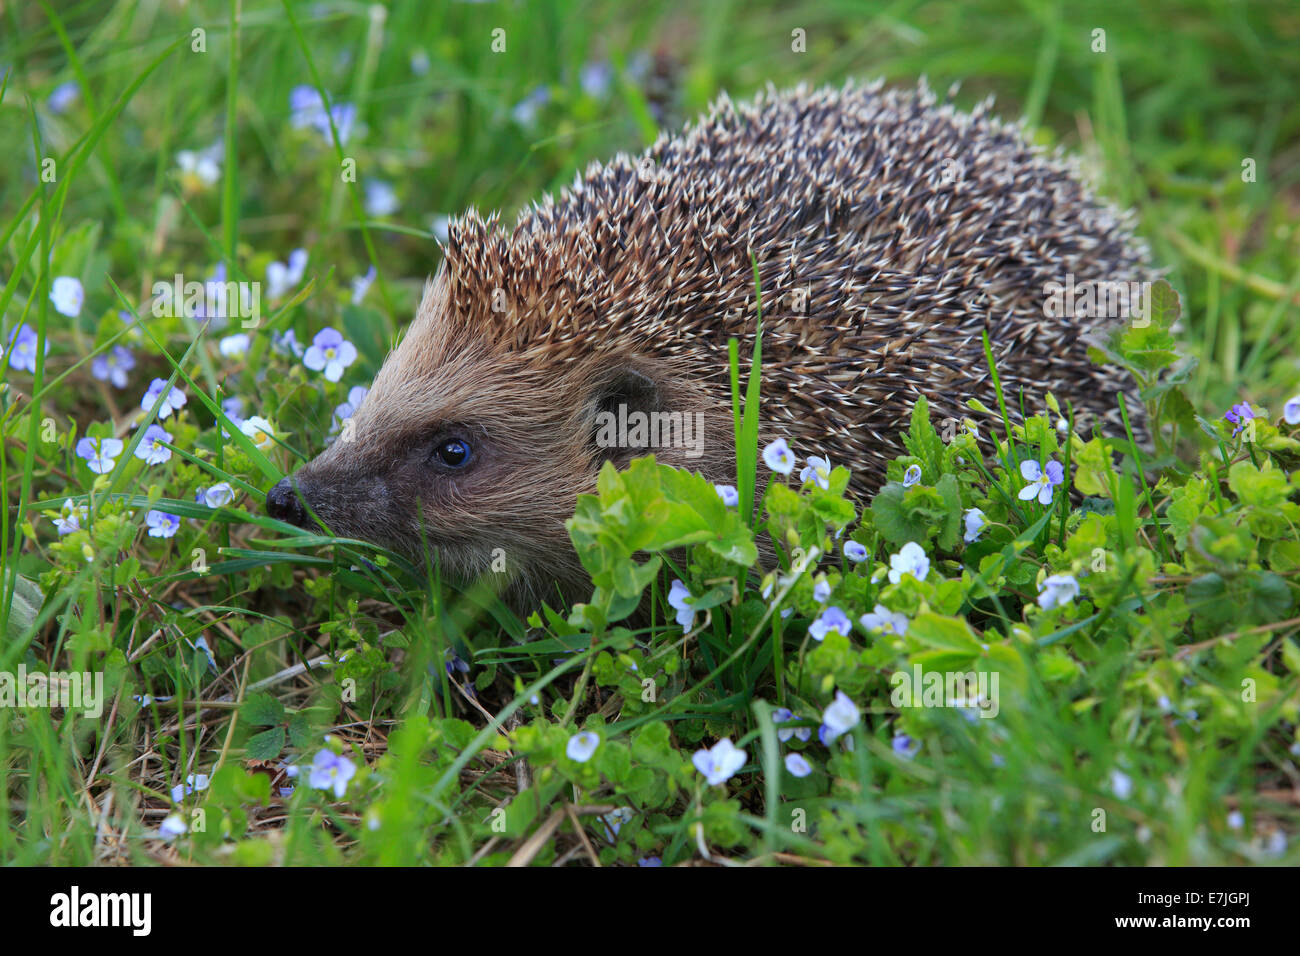 Flower, flowers, common hedgehog, Erinaceus europaeus, European hedgehog, spring, hedgehog, insectivore, Switzerland, - Stock Image